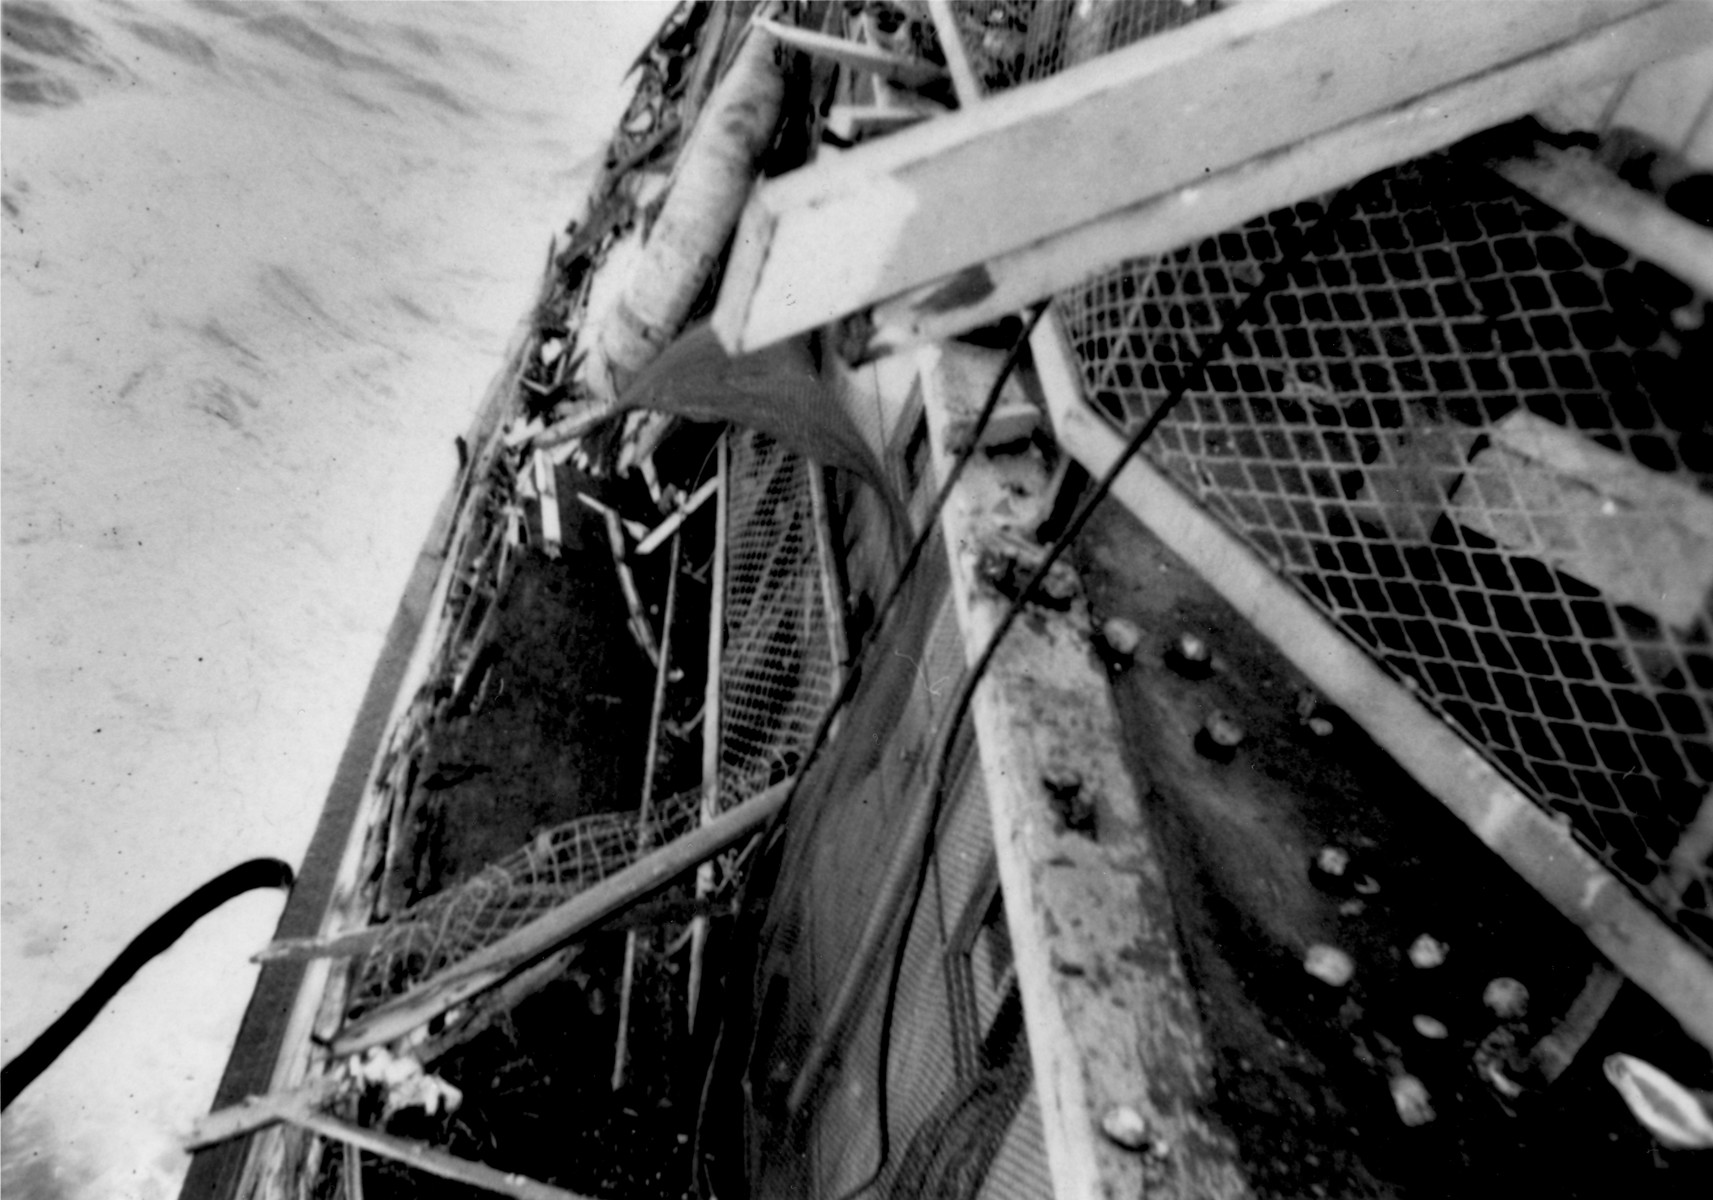 View of the heavily damaged port side of Exodus 1947 illegal immigrant ship after being rammed by a British destroyer during its interception off the coast of Palestine.